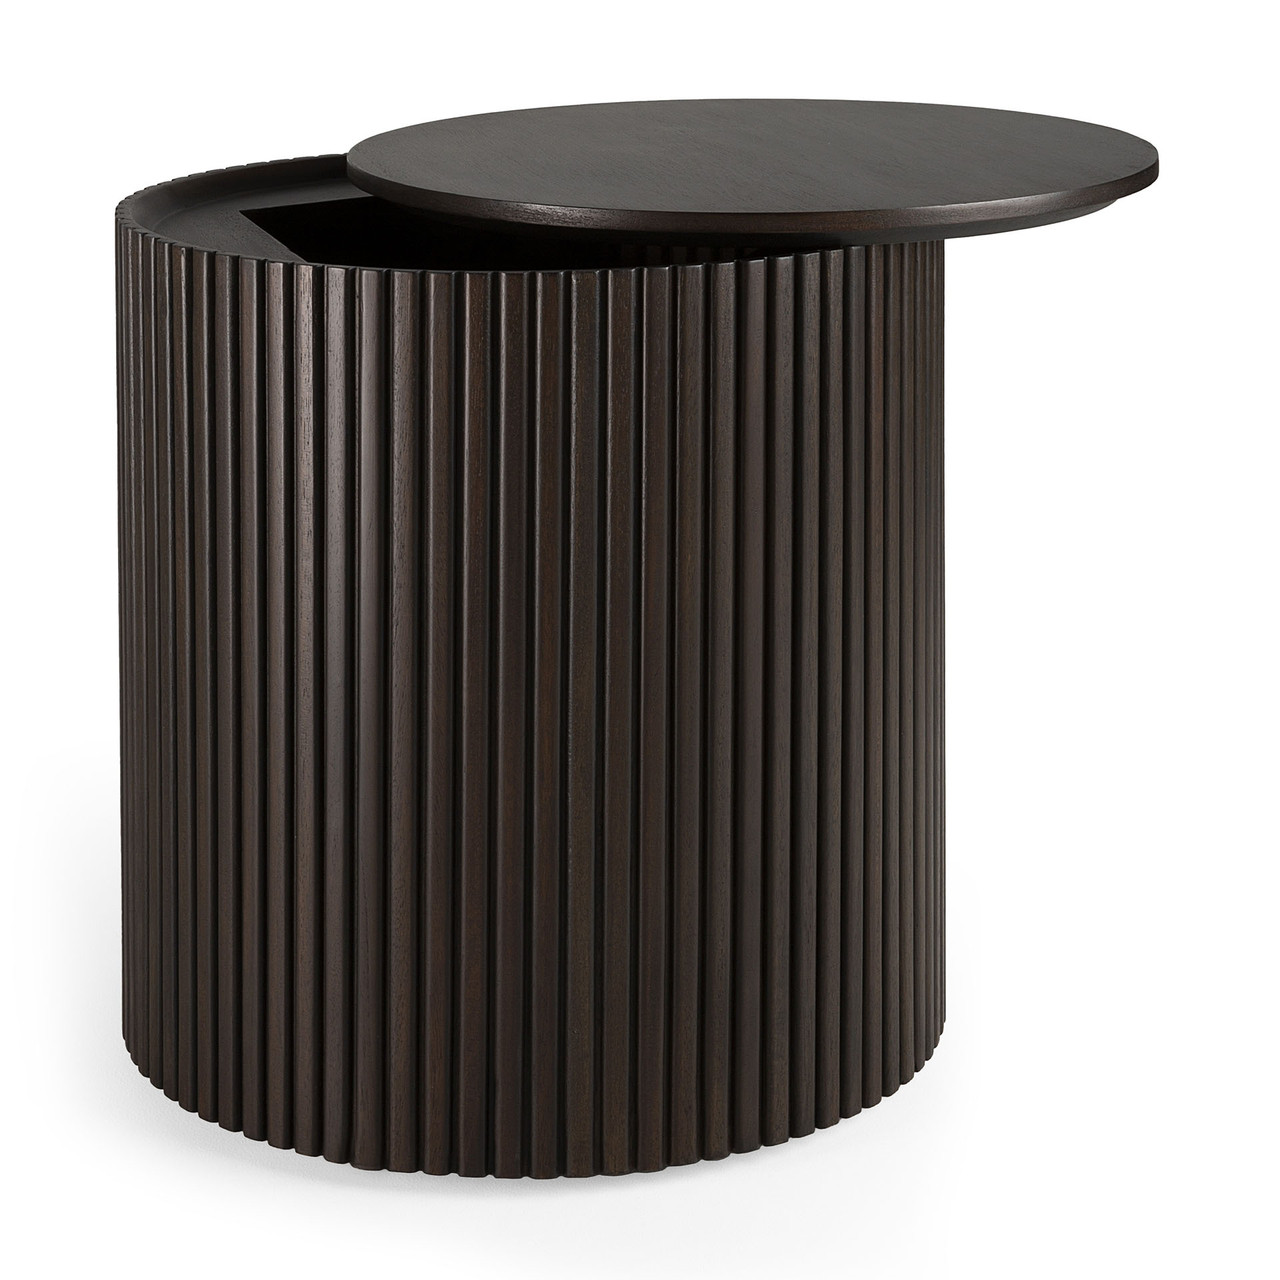 Mahogany Roller Max Dark Brown Round Side Table